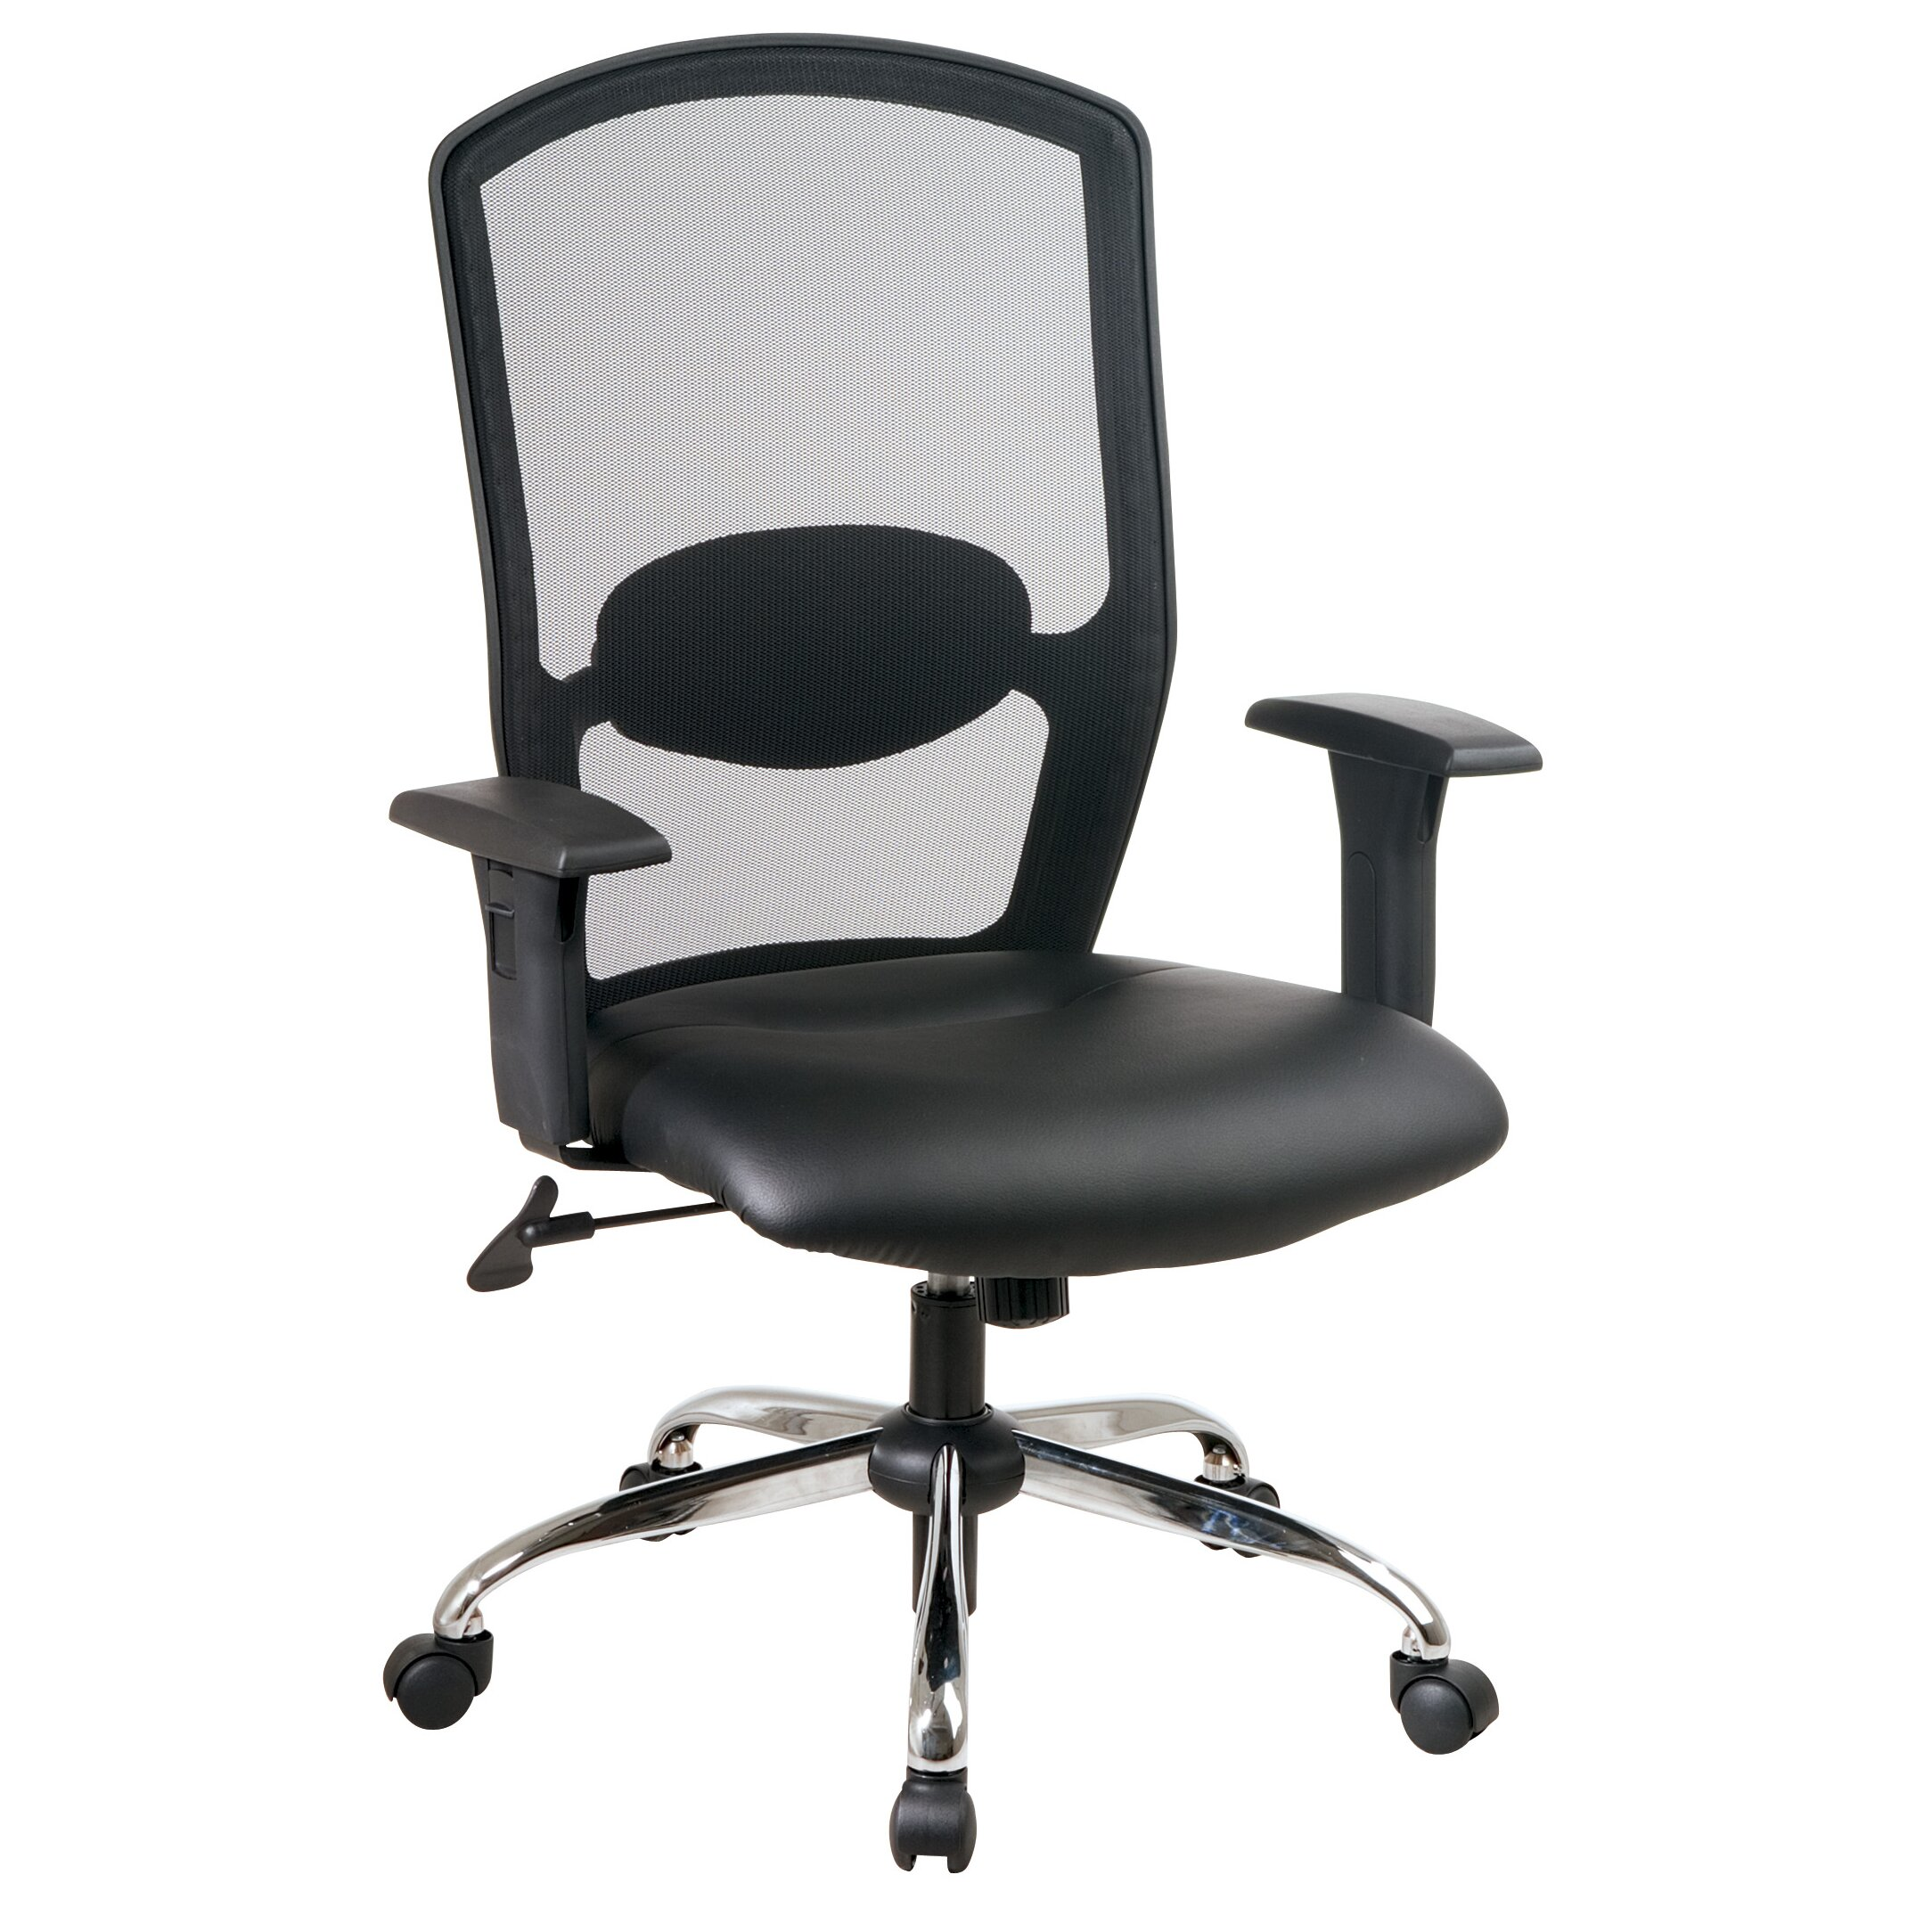 Furniture Office Furniture All Office Chairs Office Star SKU